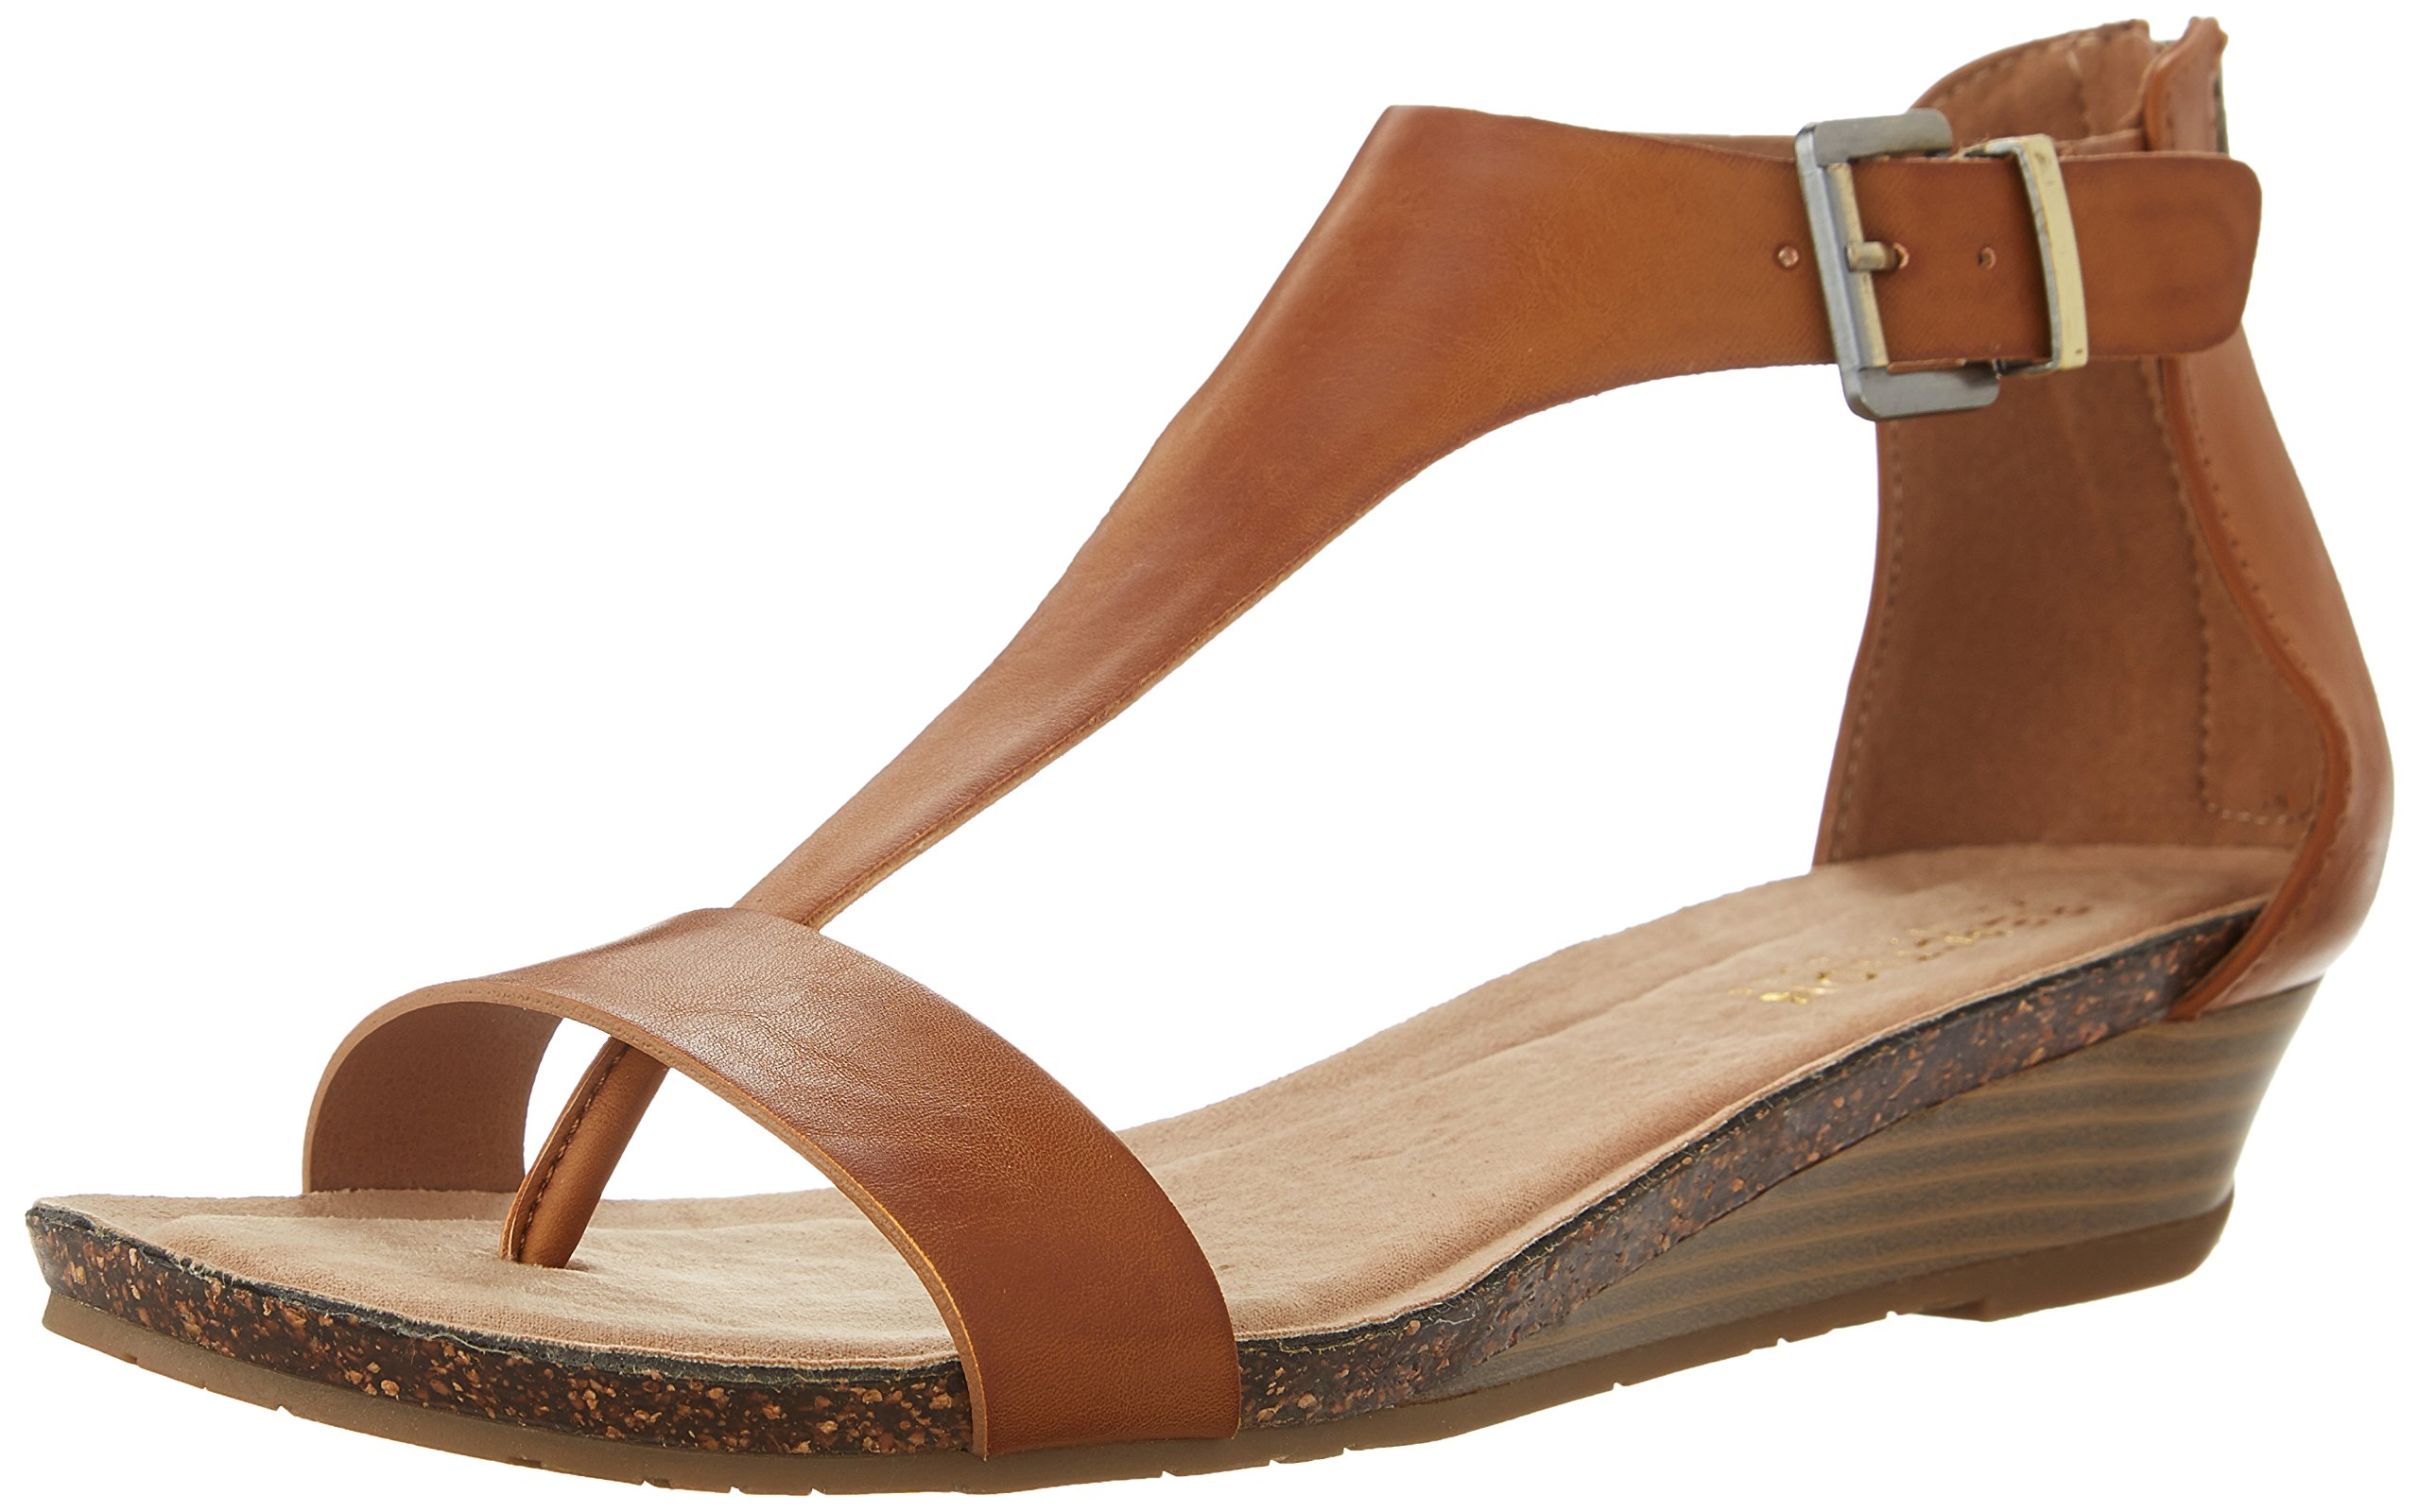 Kenneth Cole REACTION Women's Great GAL Sandal, Toffee, 6.5 M US